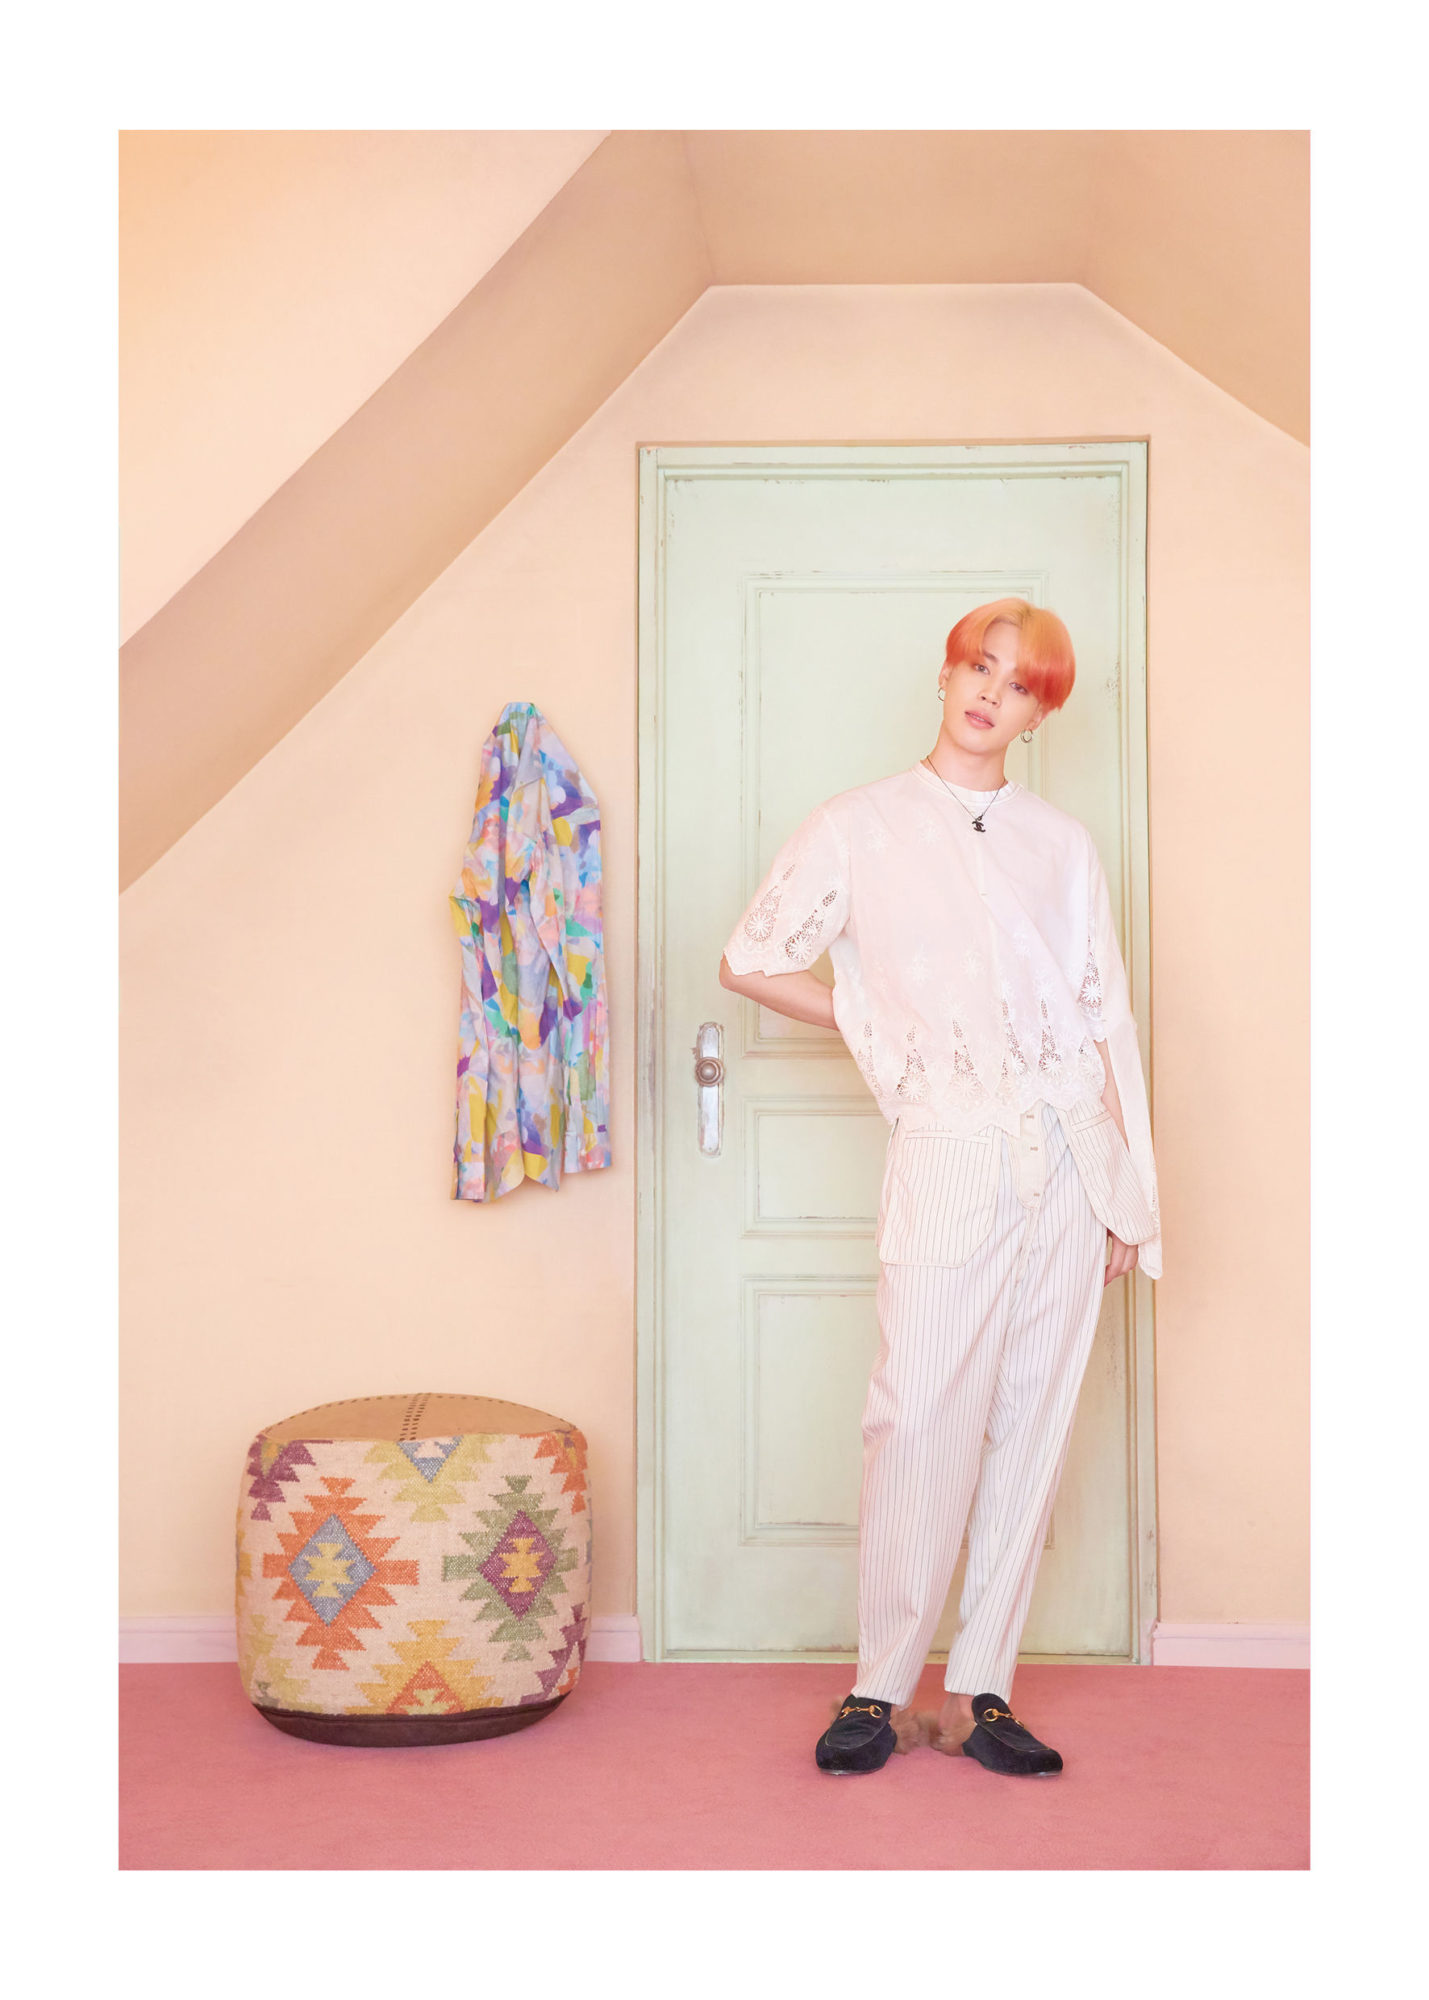 Www New Hd Girl Wallpaper Com Bts Map Of The Soul Persona Profile Photos Hd Hr K